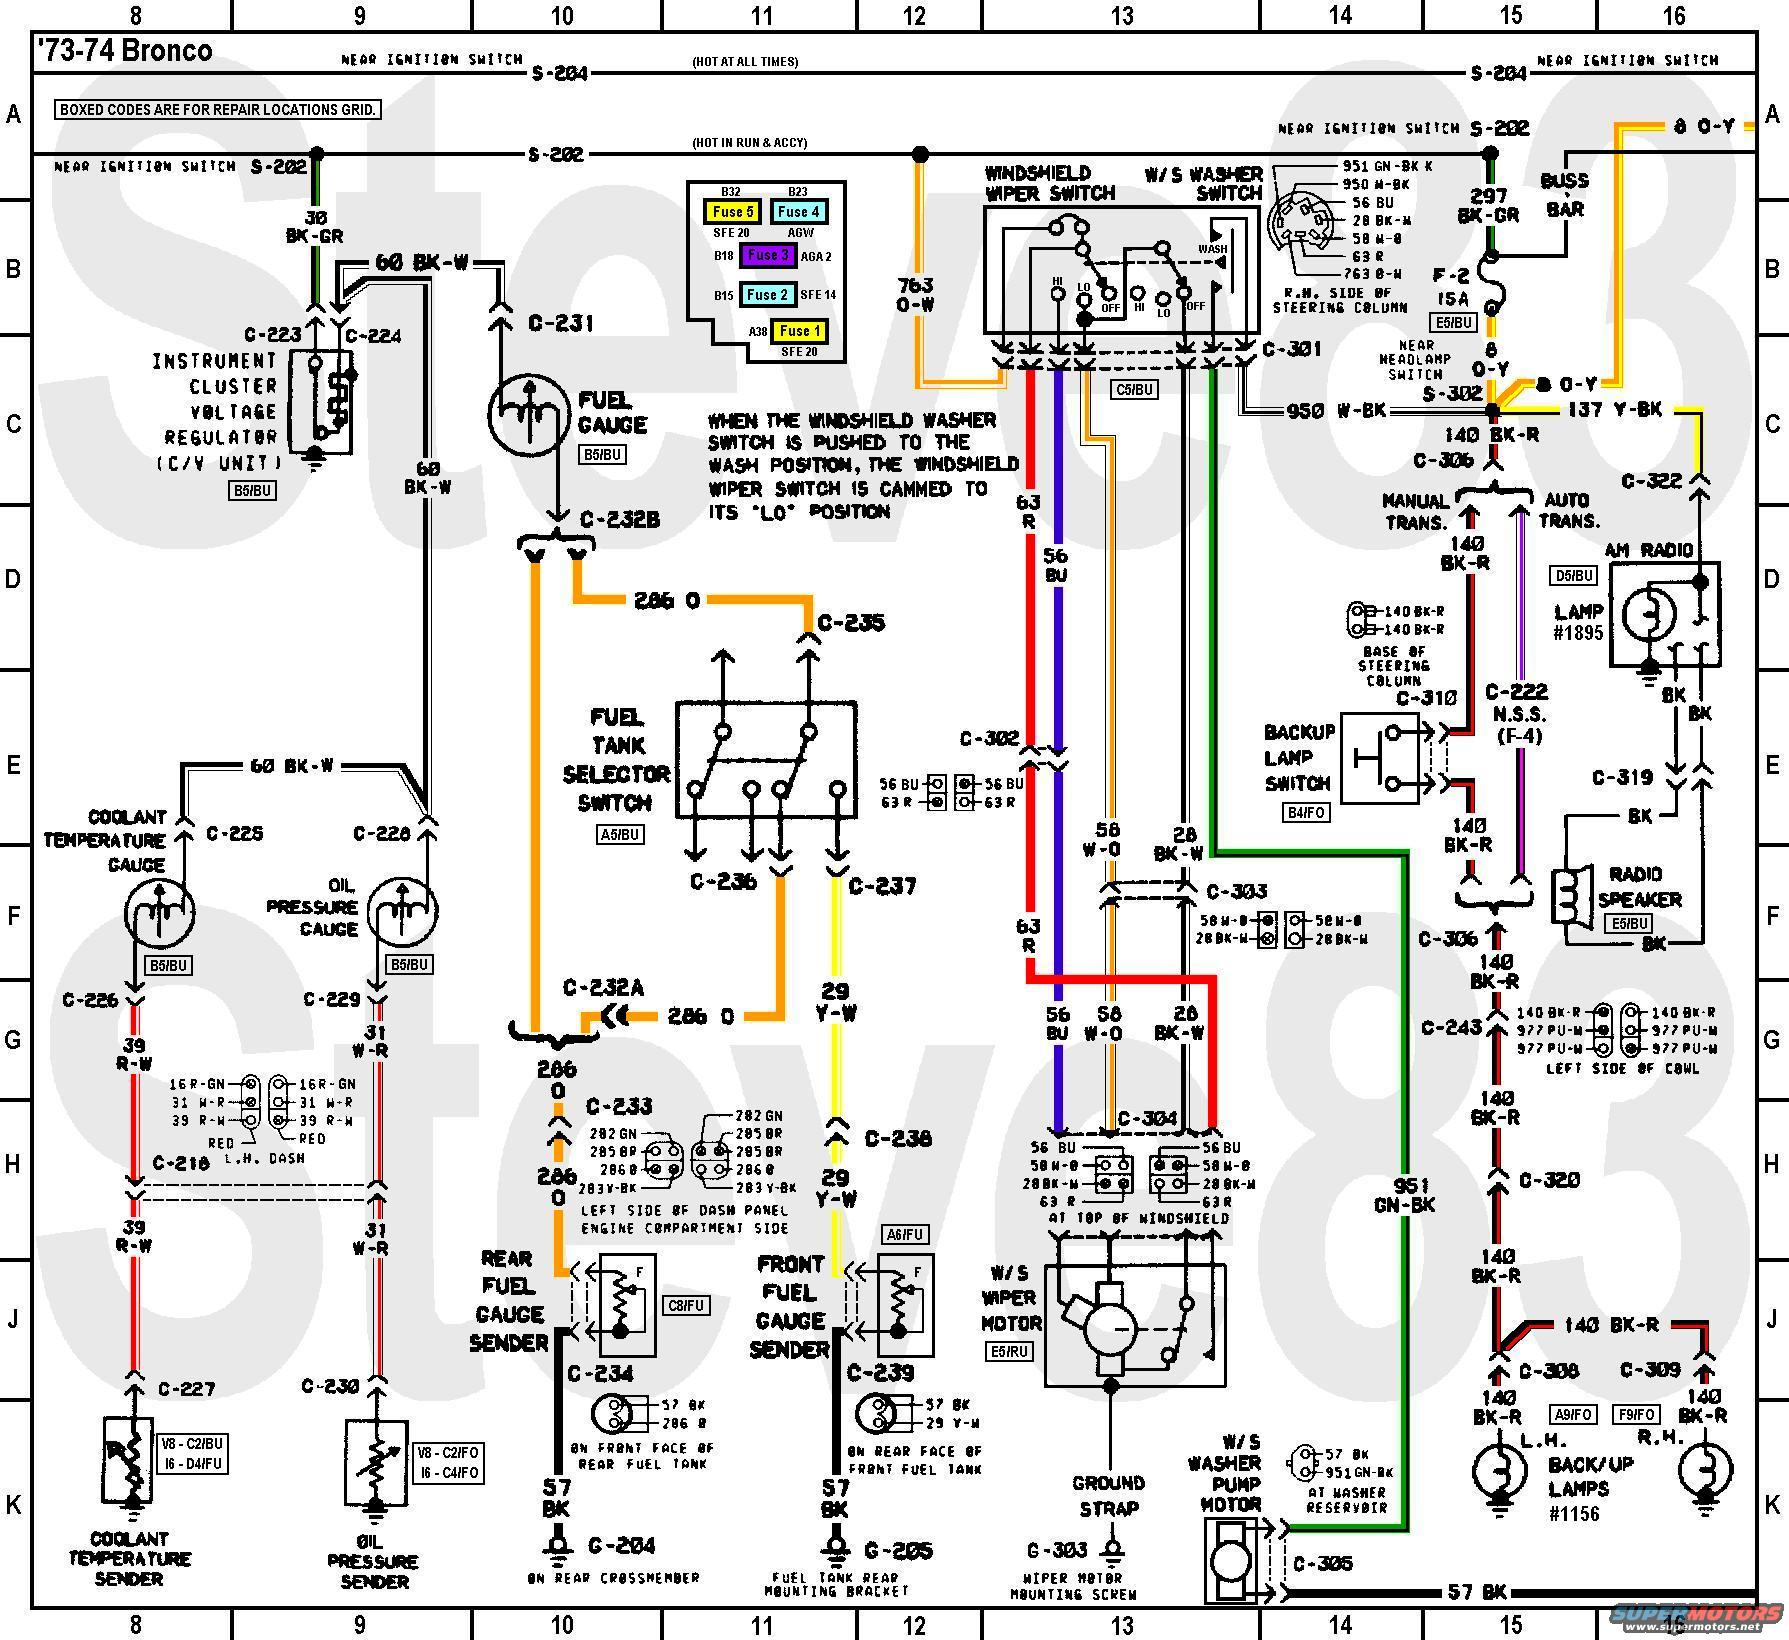 th?id=OIP.0AuwJcsg9AU8uQ__V_igmgEFDv&pid=15.1 1990 mitsubishi triton radio wiring diagram wiring diagram and 2006 mitsubishi eclipse radio wiring diagram at virtualis.co